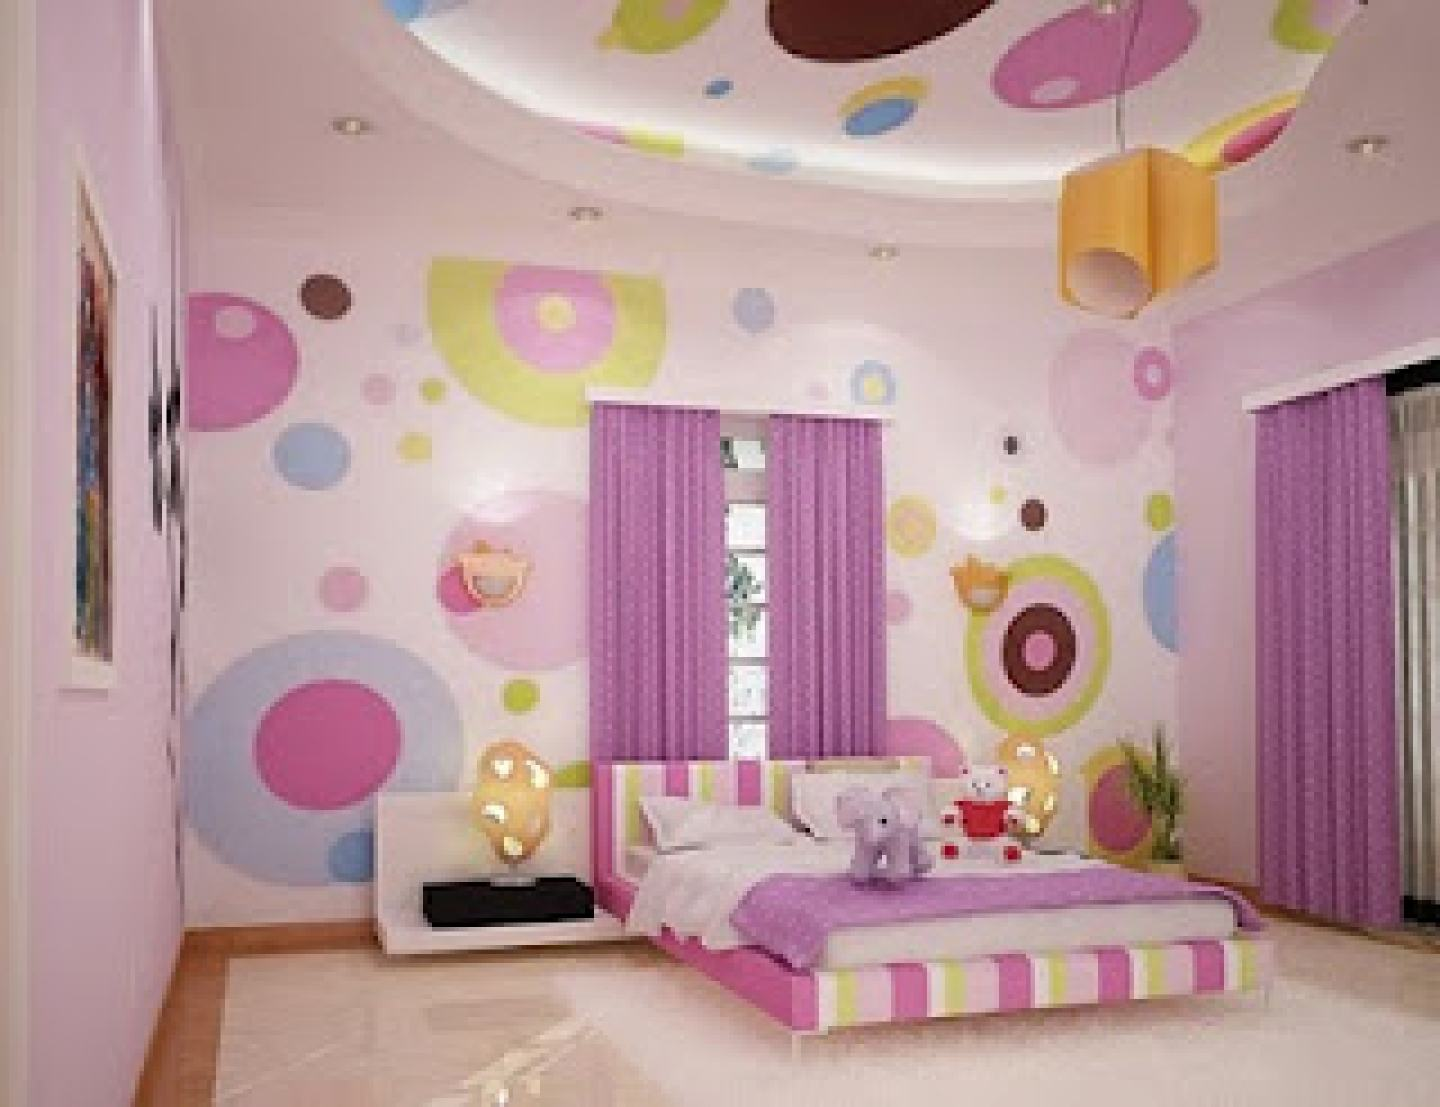 Beau Awesome Design Of The Bedroom For Kids With Kids Furniture With Purple  Urtain And Colorful Wall